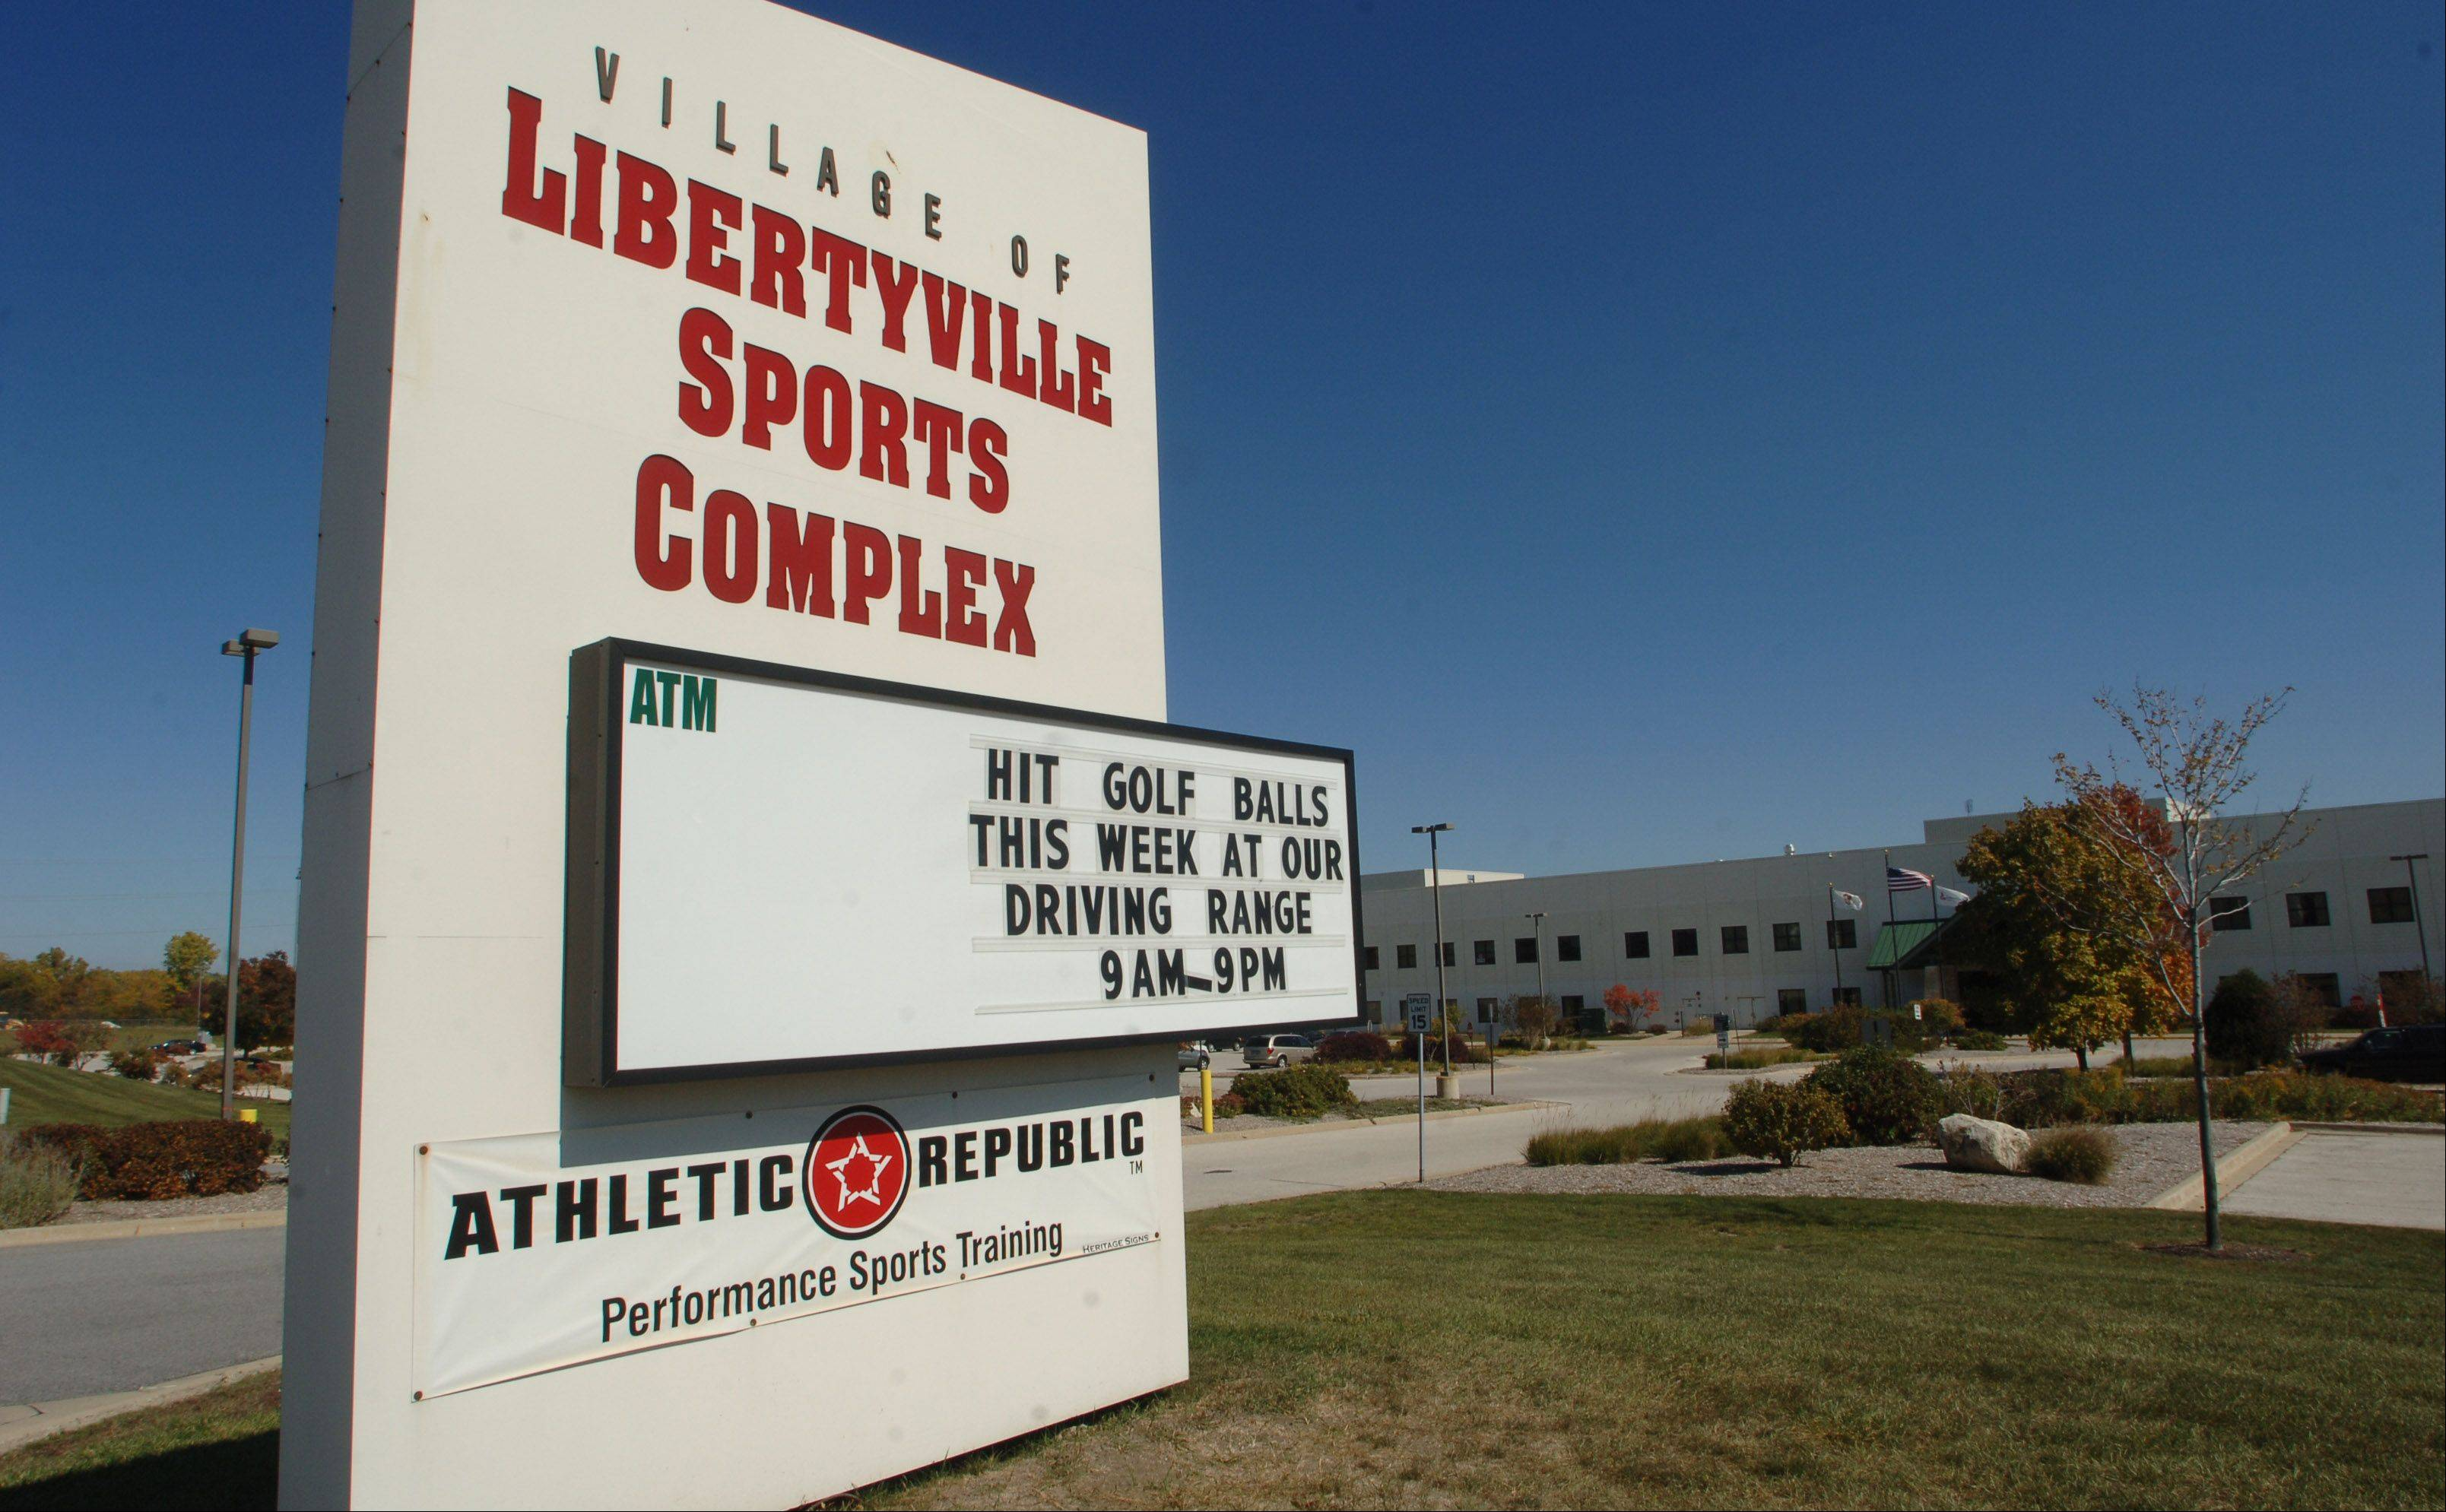 Bolander Park for sale, naming rights available for Libetyville Sports Complex